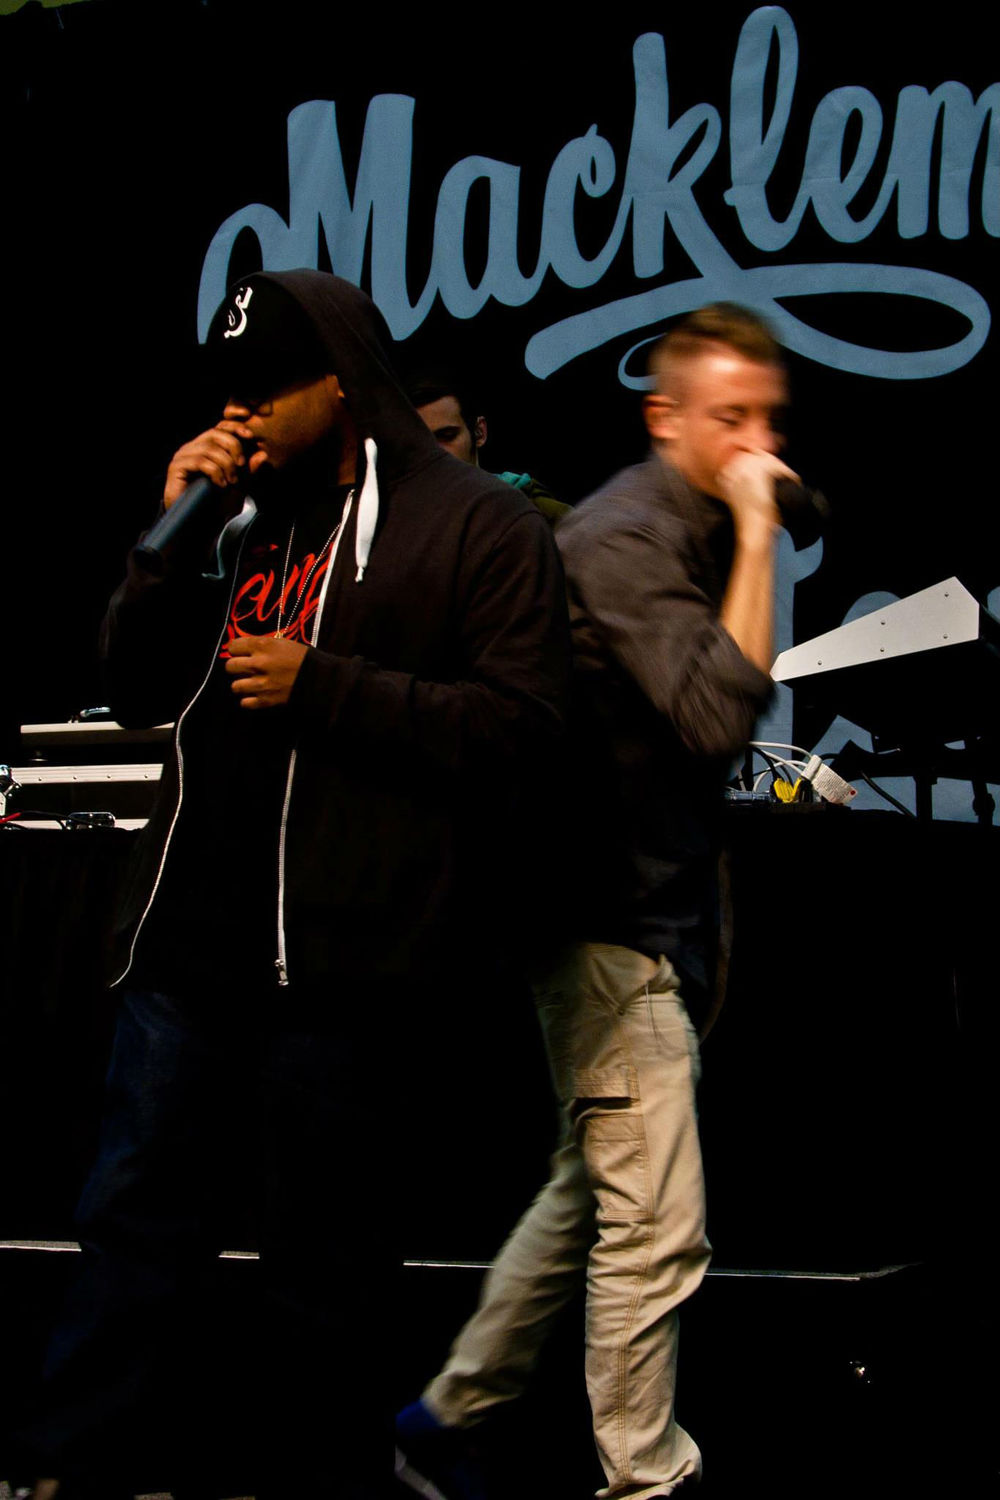 Xperience - Macklemore Fall 2011 Tour - 20121120 - 013.jpg